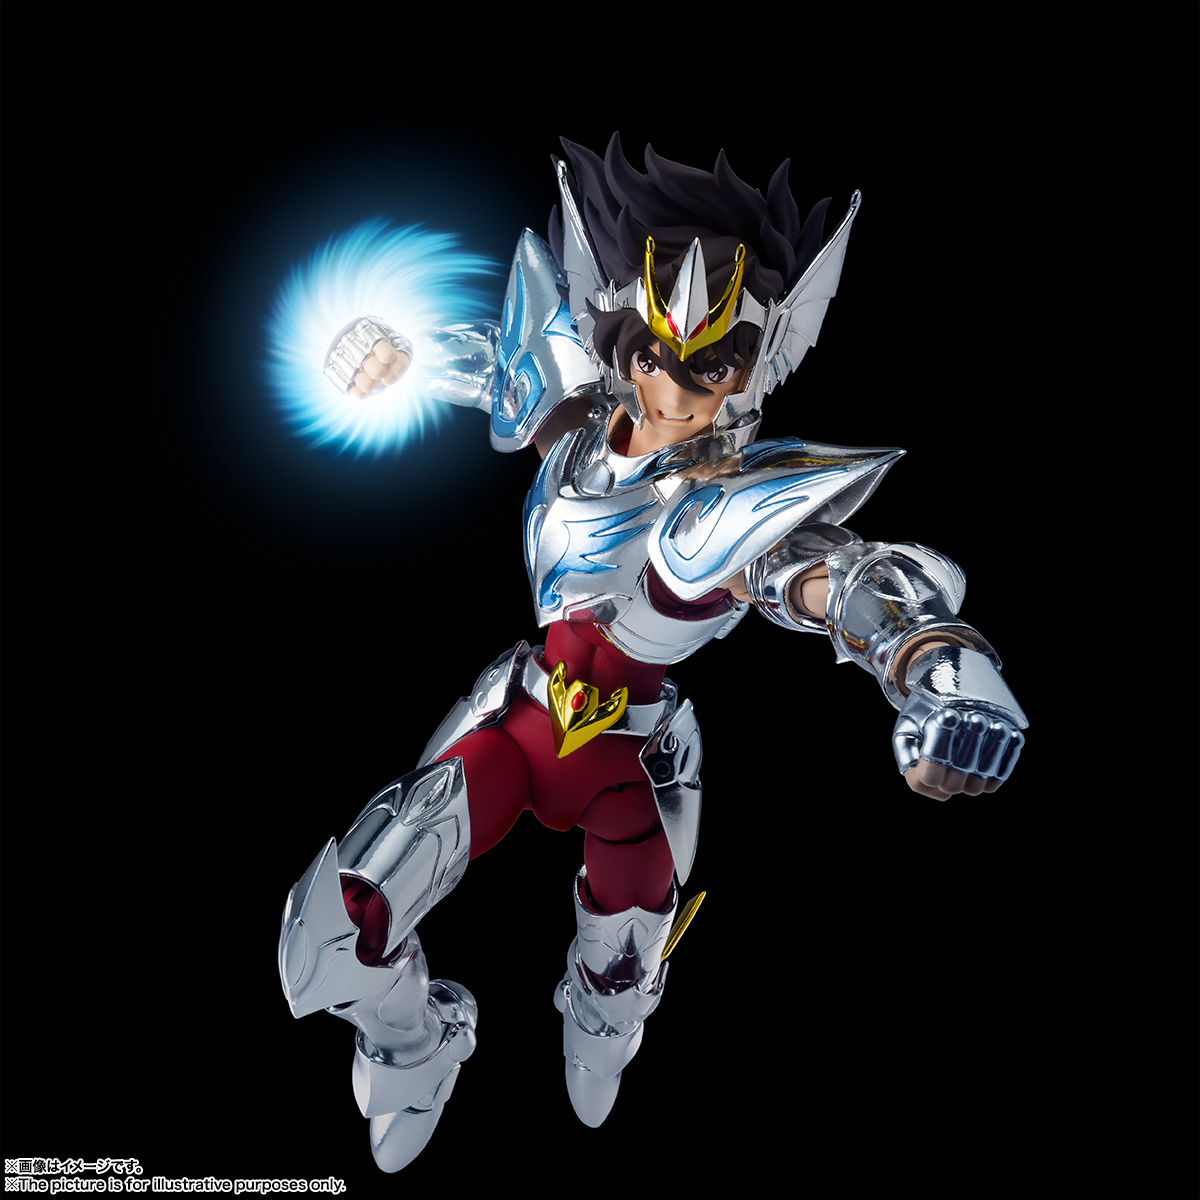 Saint Cloth Myth Pegasus Seiya (Heavenly Hen) 11